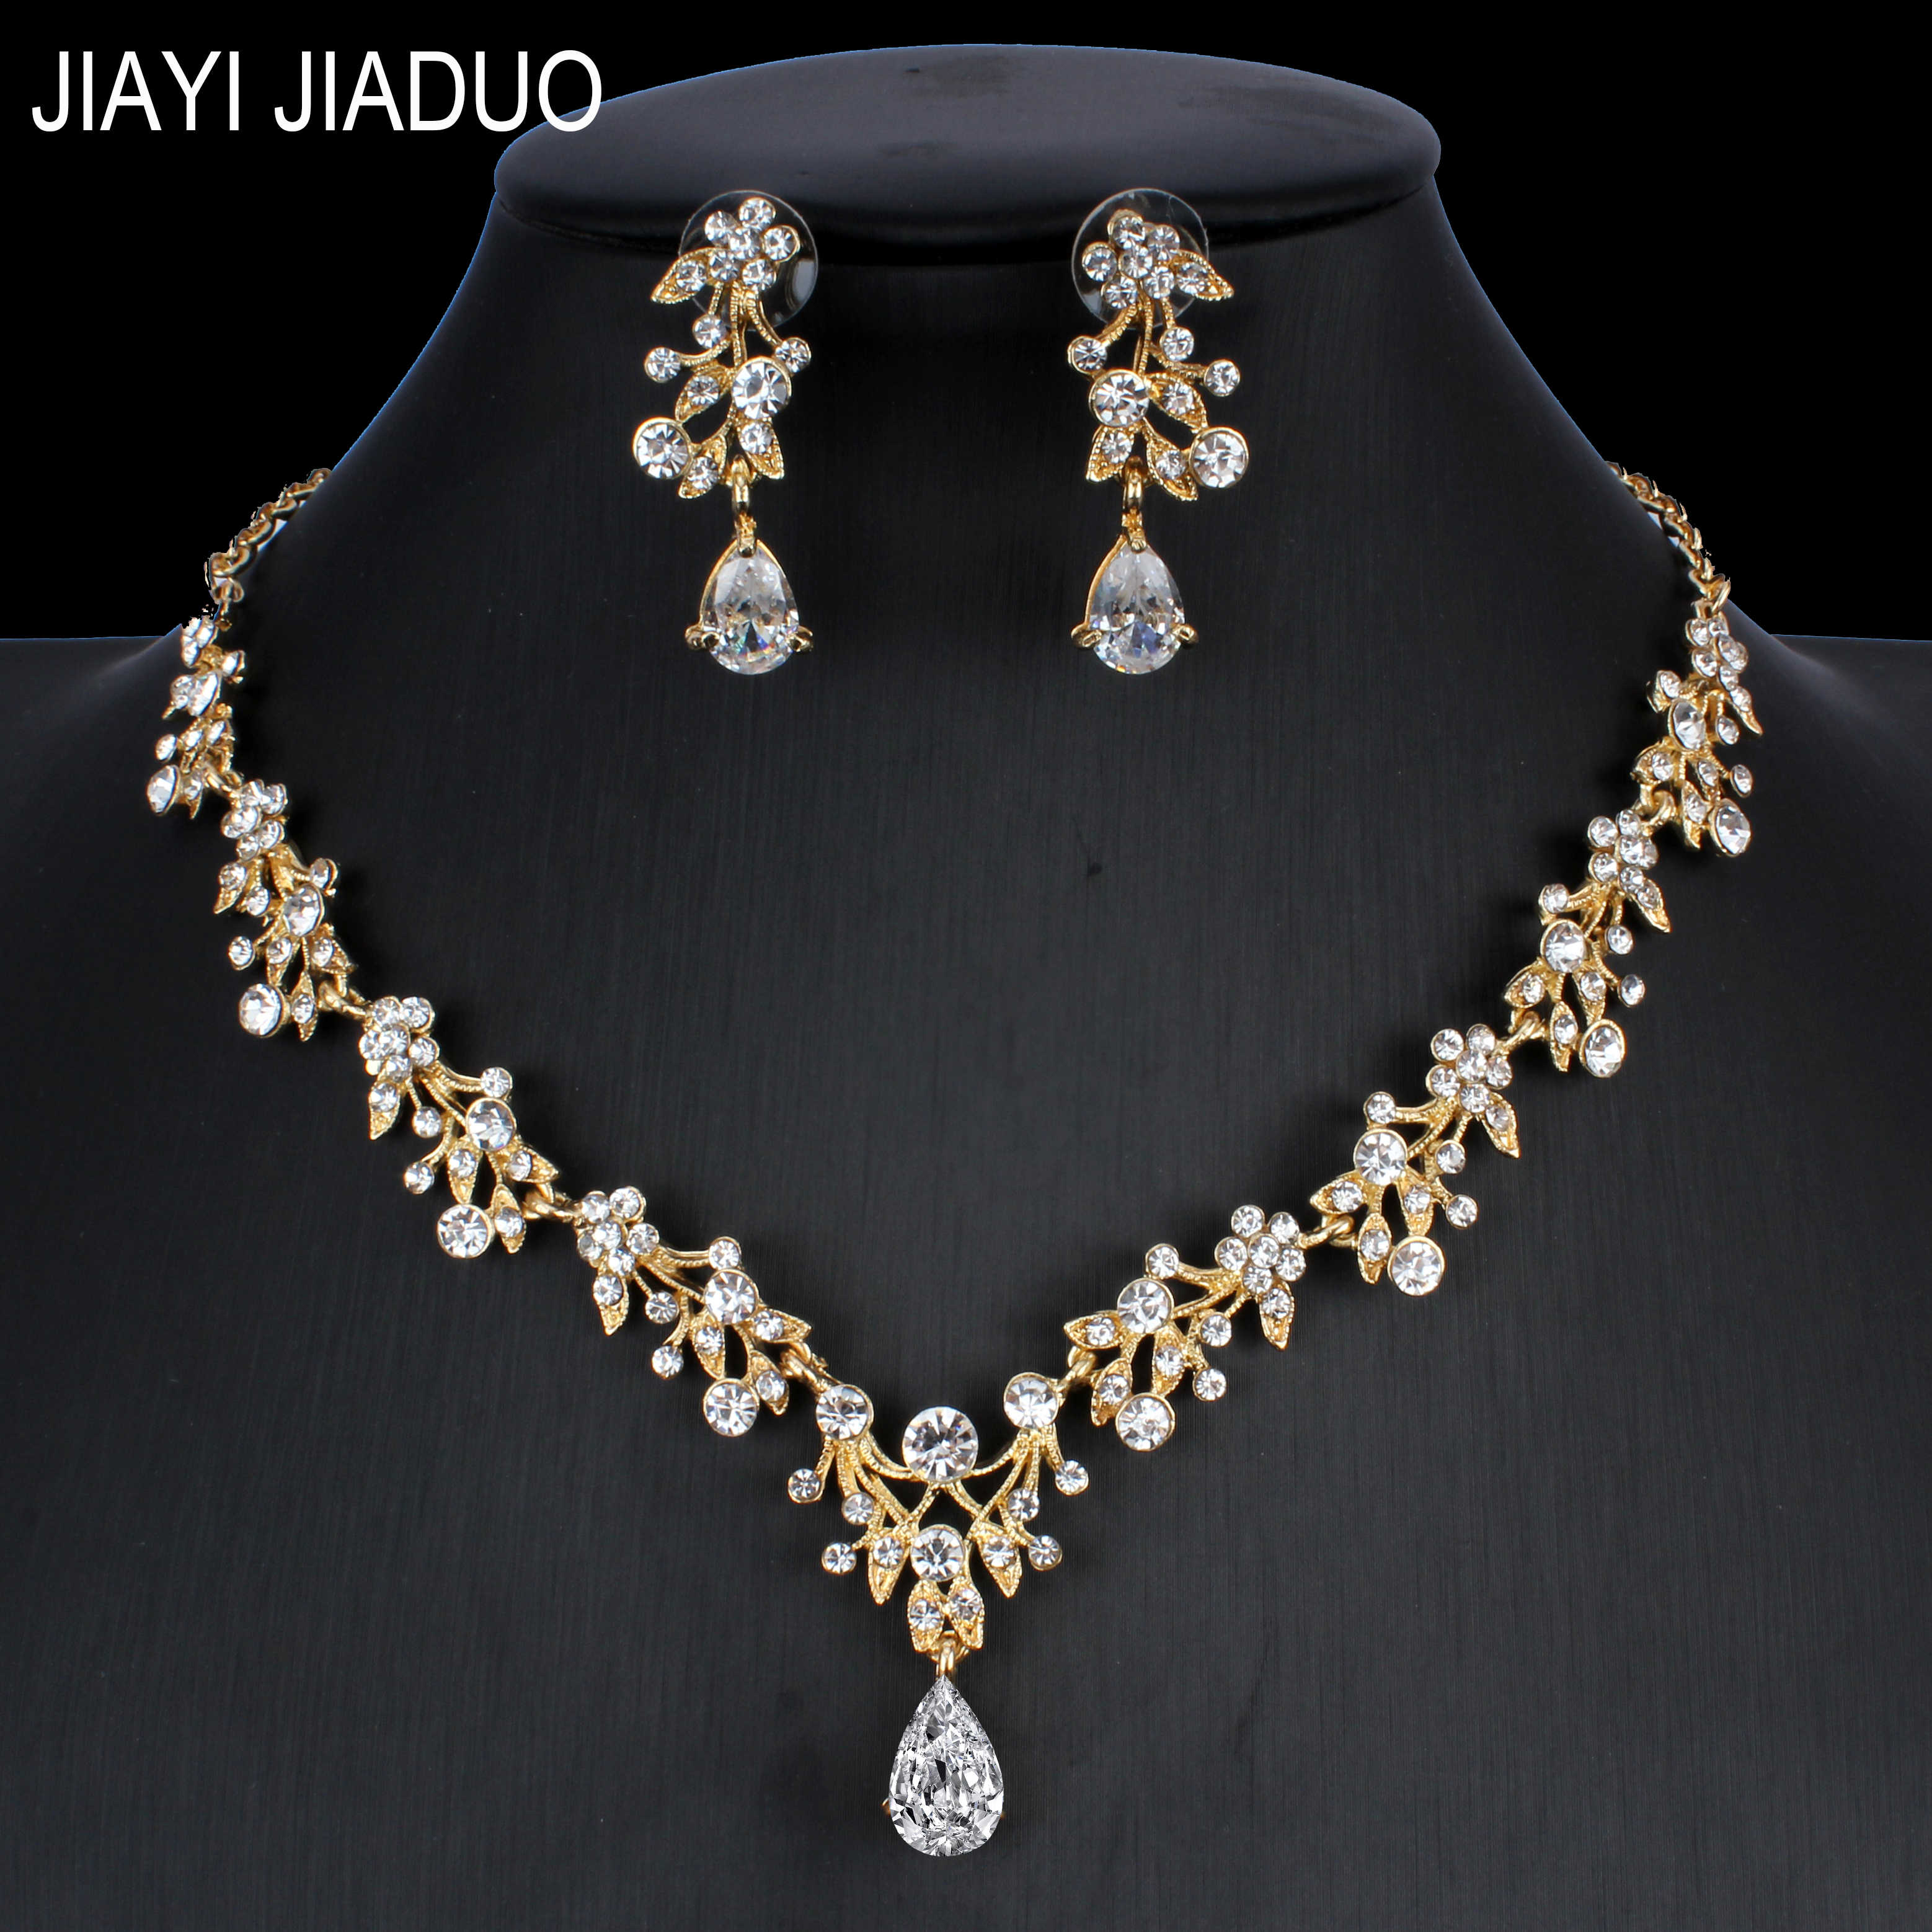 jiayijiaduo Indian Jewelry Set for Women Marriage Jewelry Wedding Drop Necklace Earrings Set Gold Color